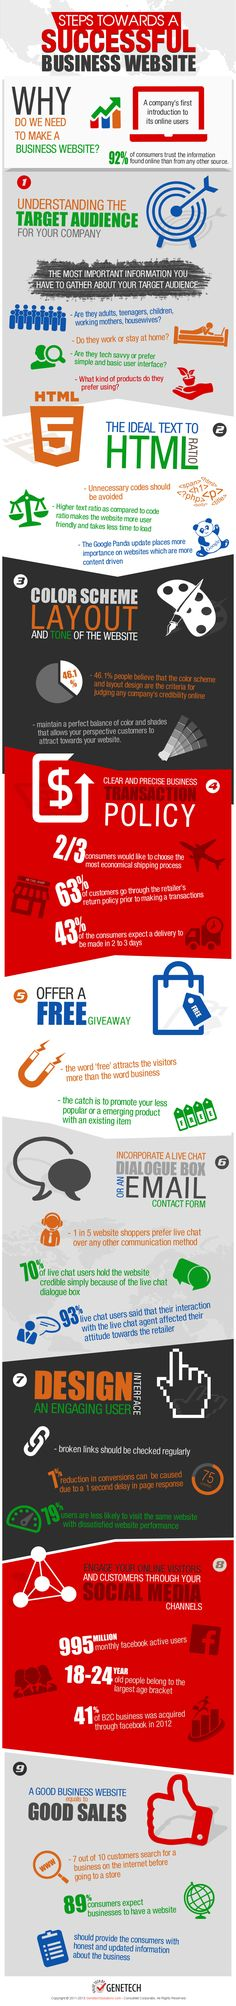 How to Build a Successful Business Website #infographic #infografía